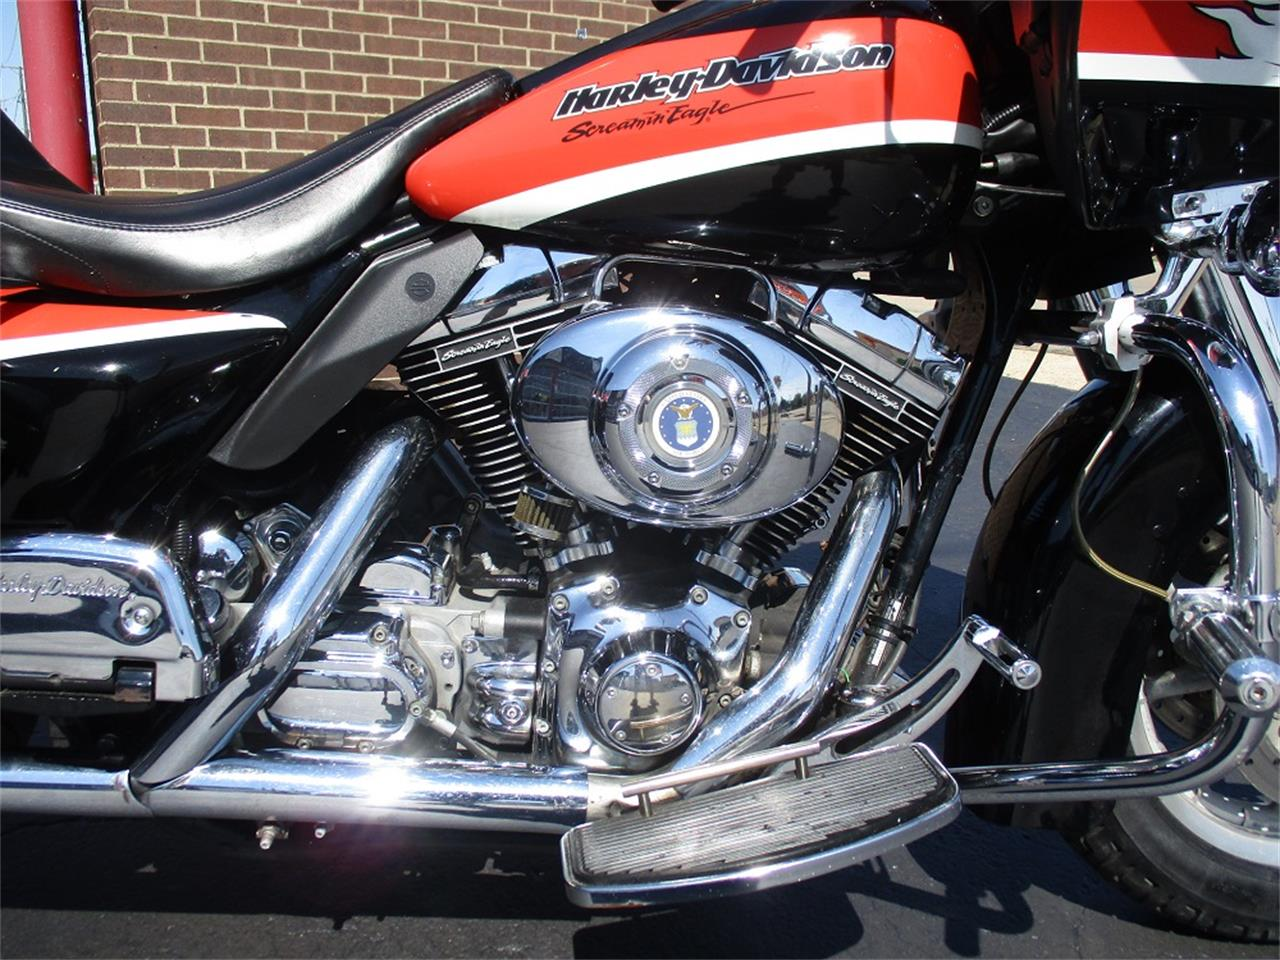 2000 Harley-Davidson Road Glide (CC-1389025) for sale in Sterling, Illinois